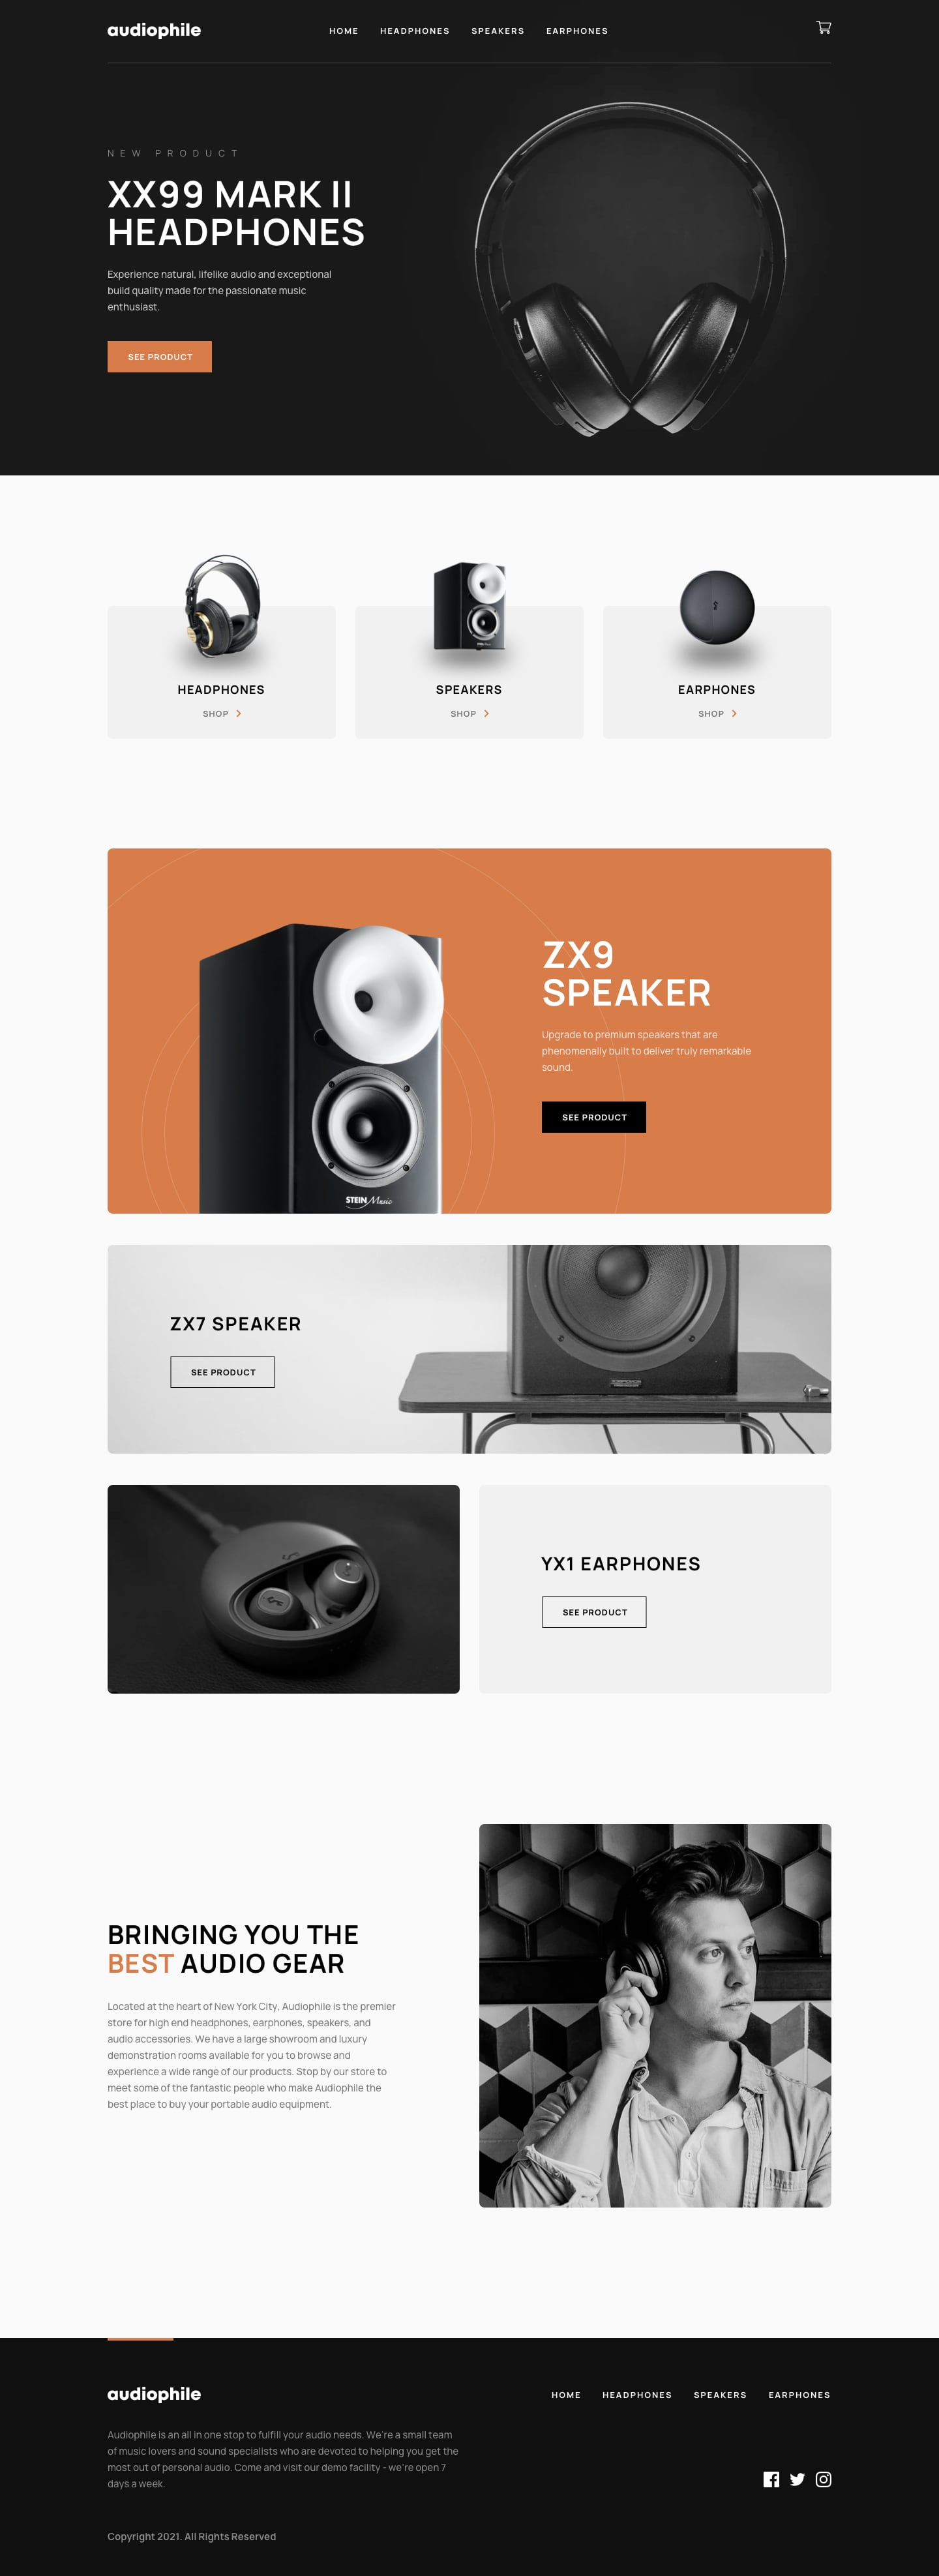 Design preview for Audiophile e-commerce website coding challenge